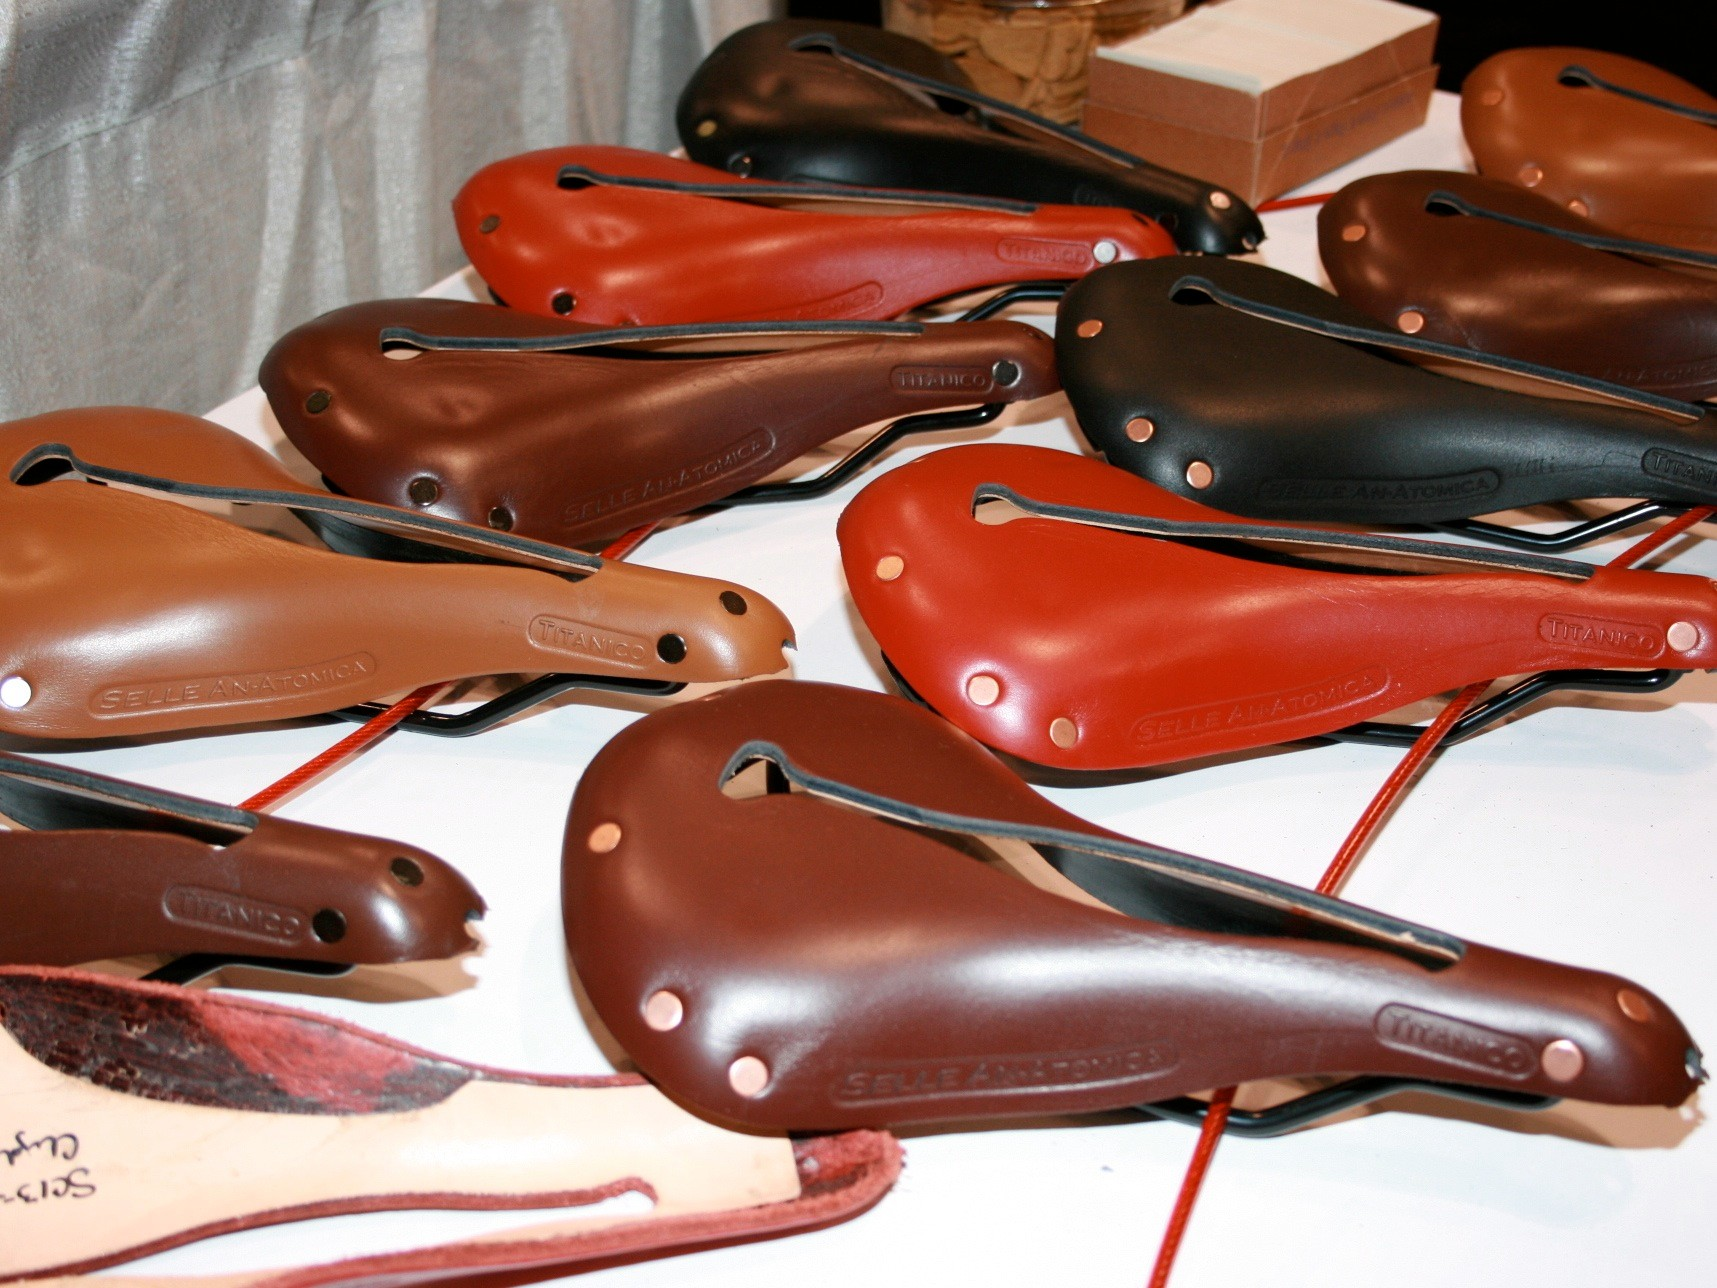 Selle Unatomica leather saddles - made in Wisconsin.